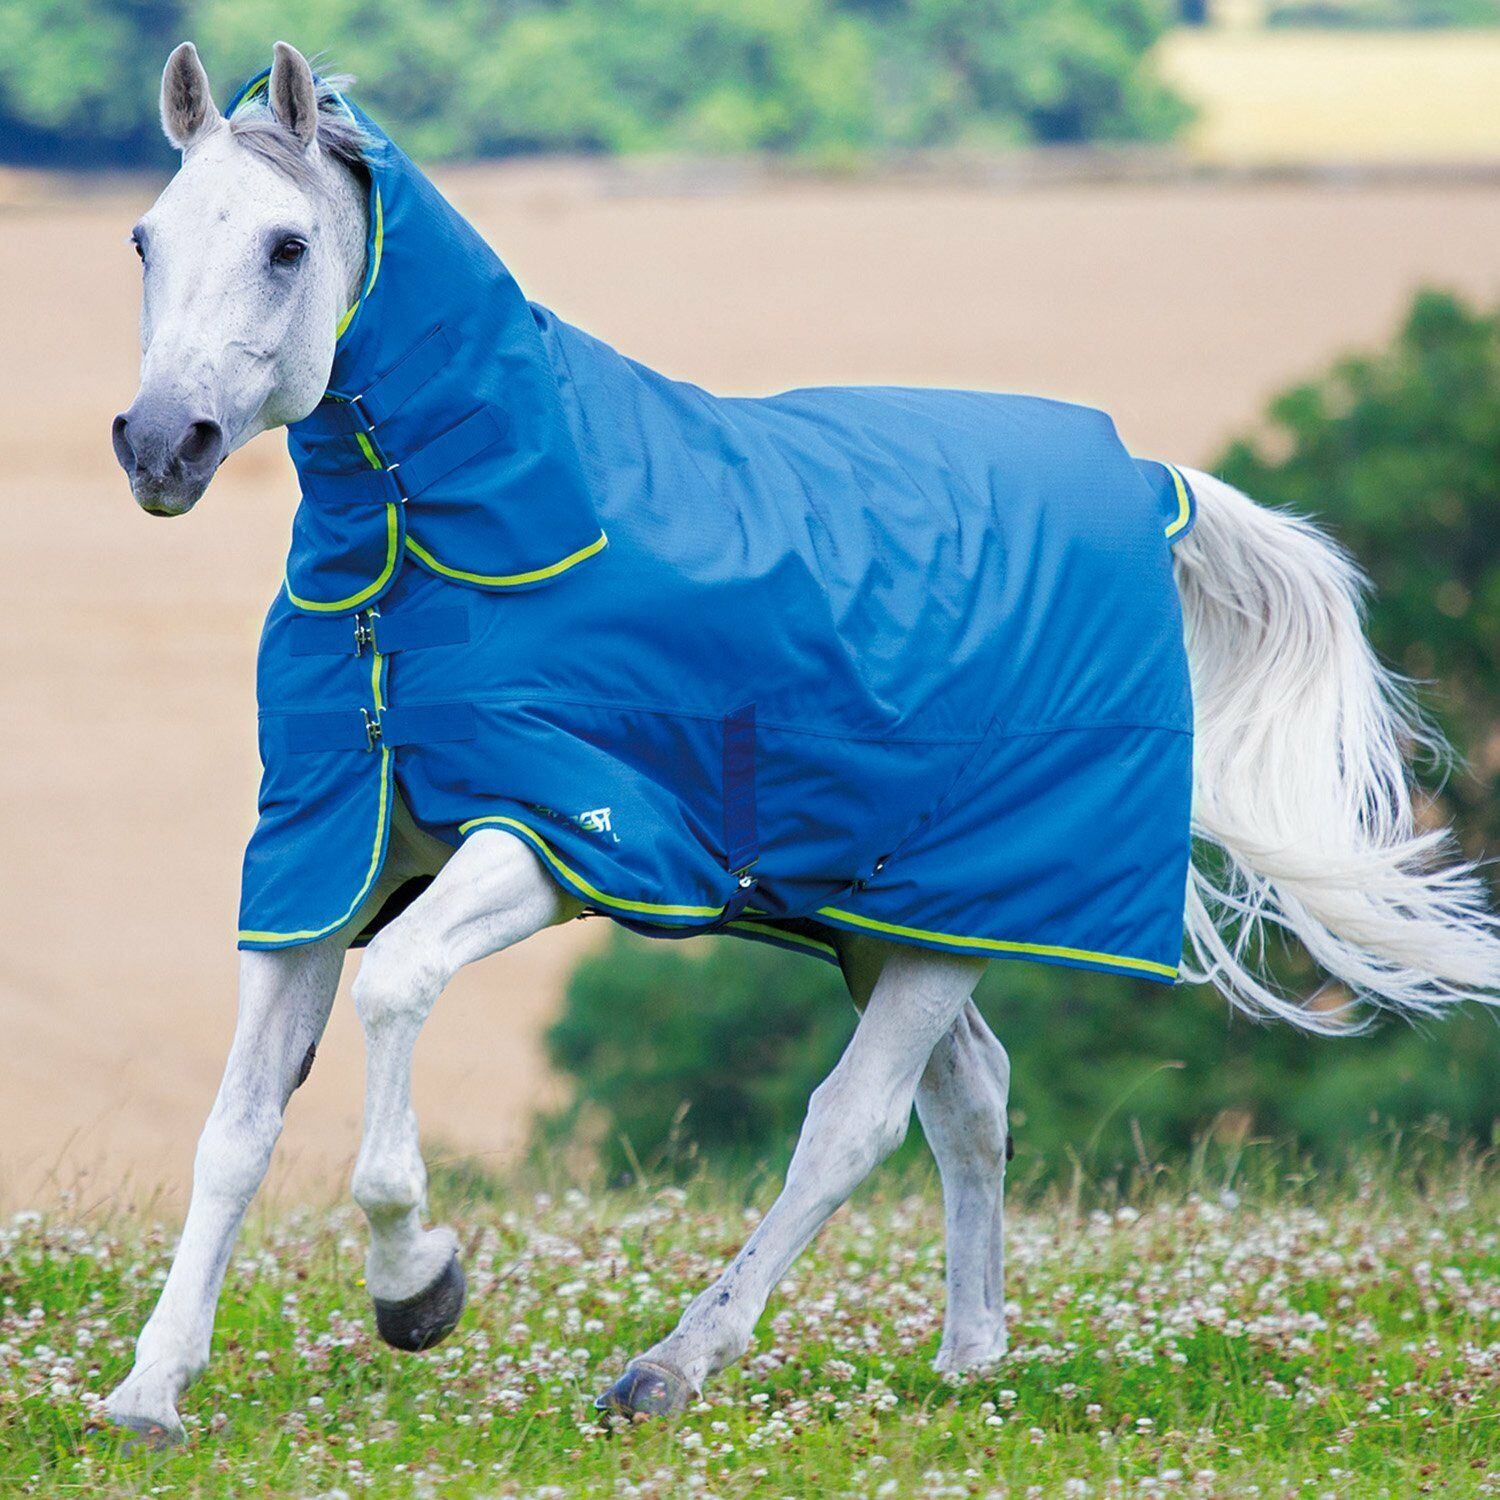 Shires Tempest Original 100g Combo Unisex Horse Rug Turnout - Royal Lime